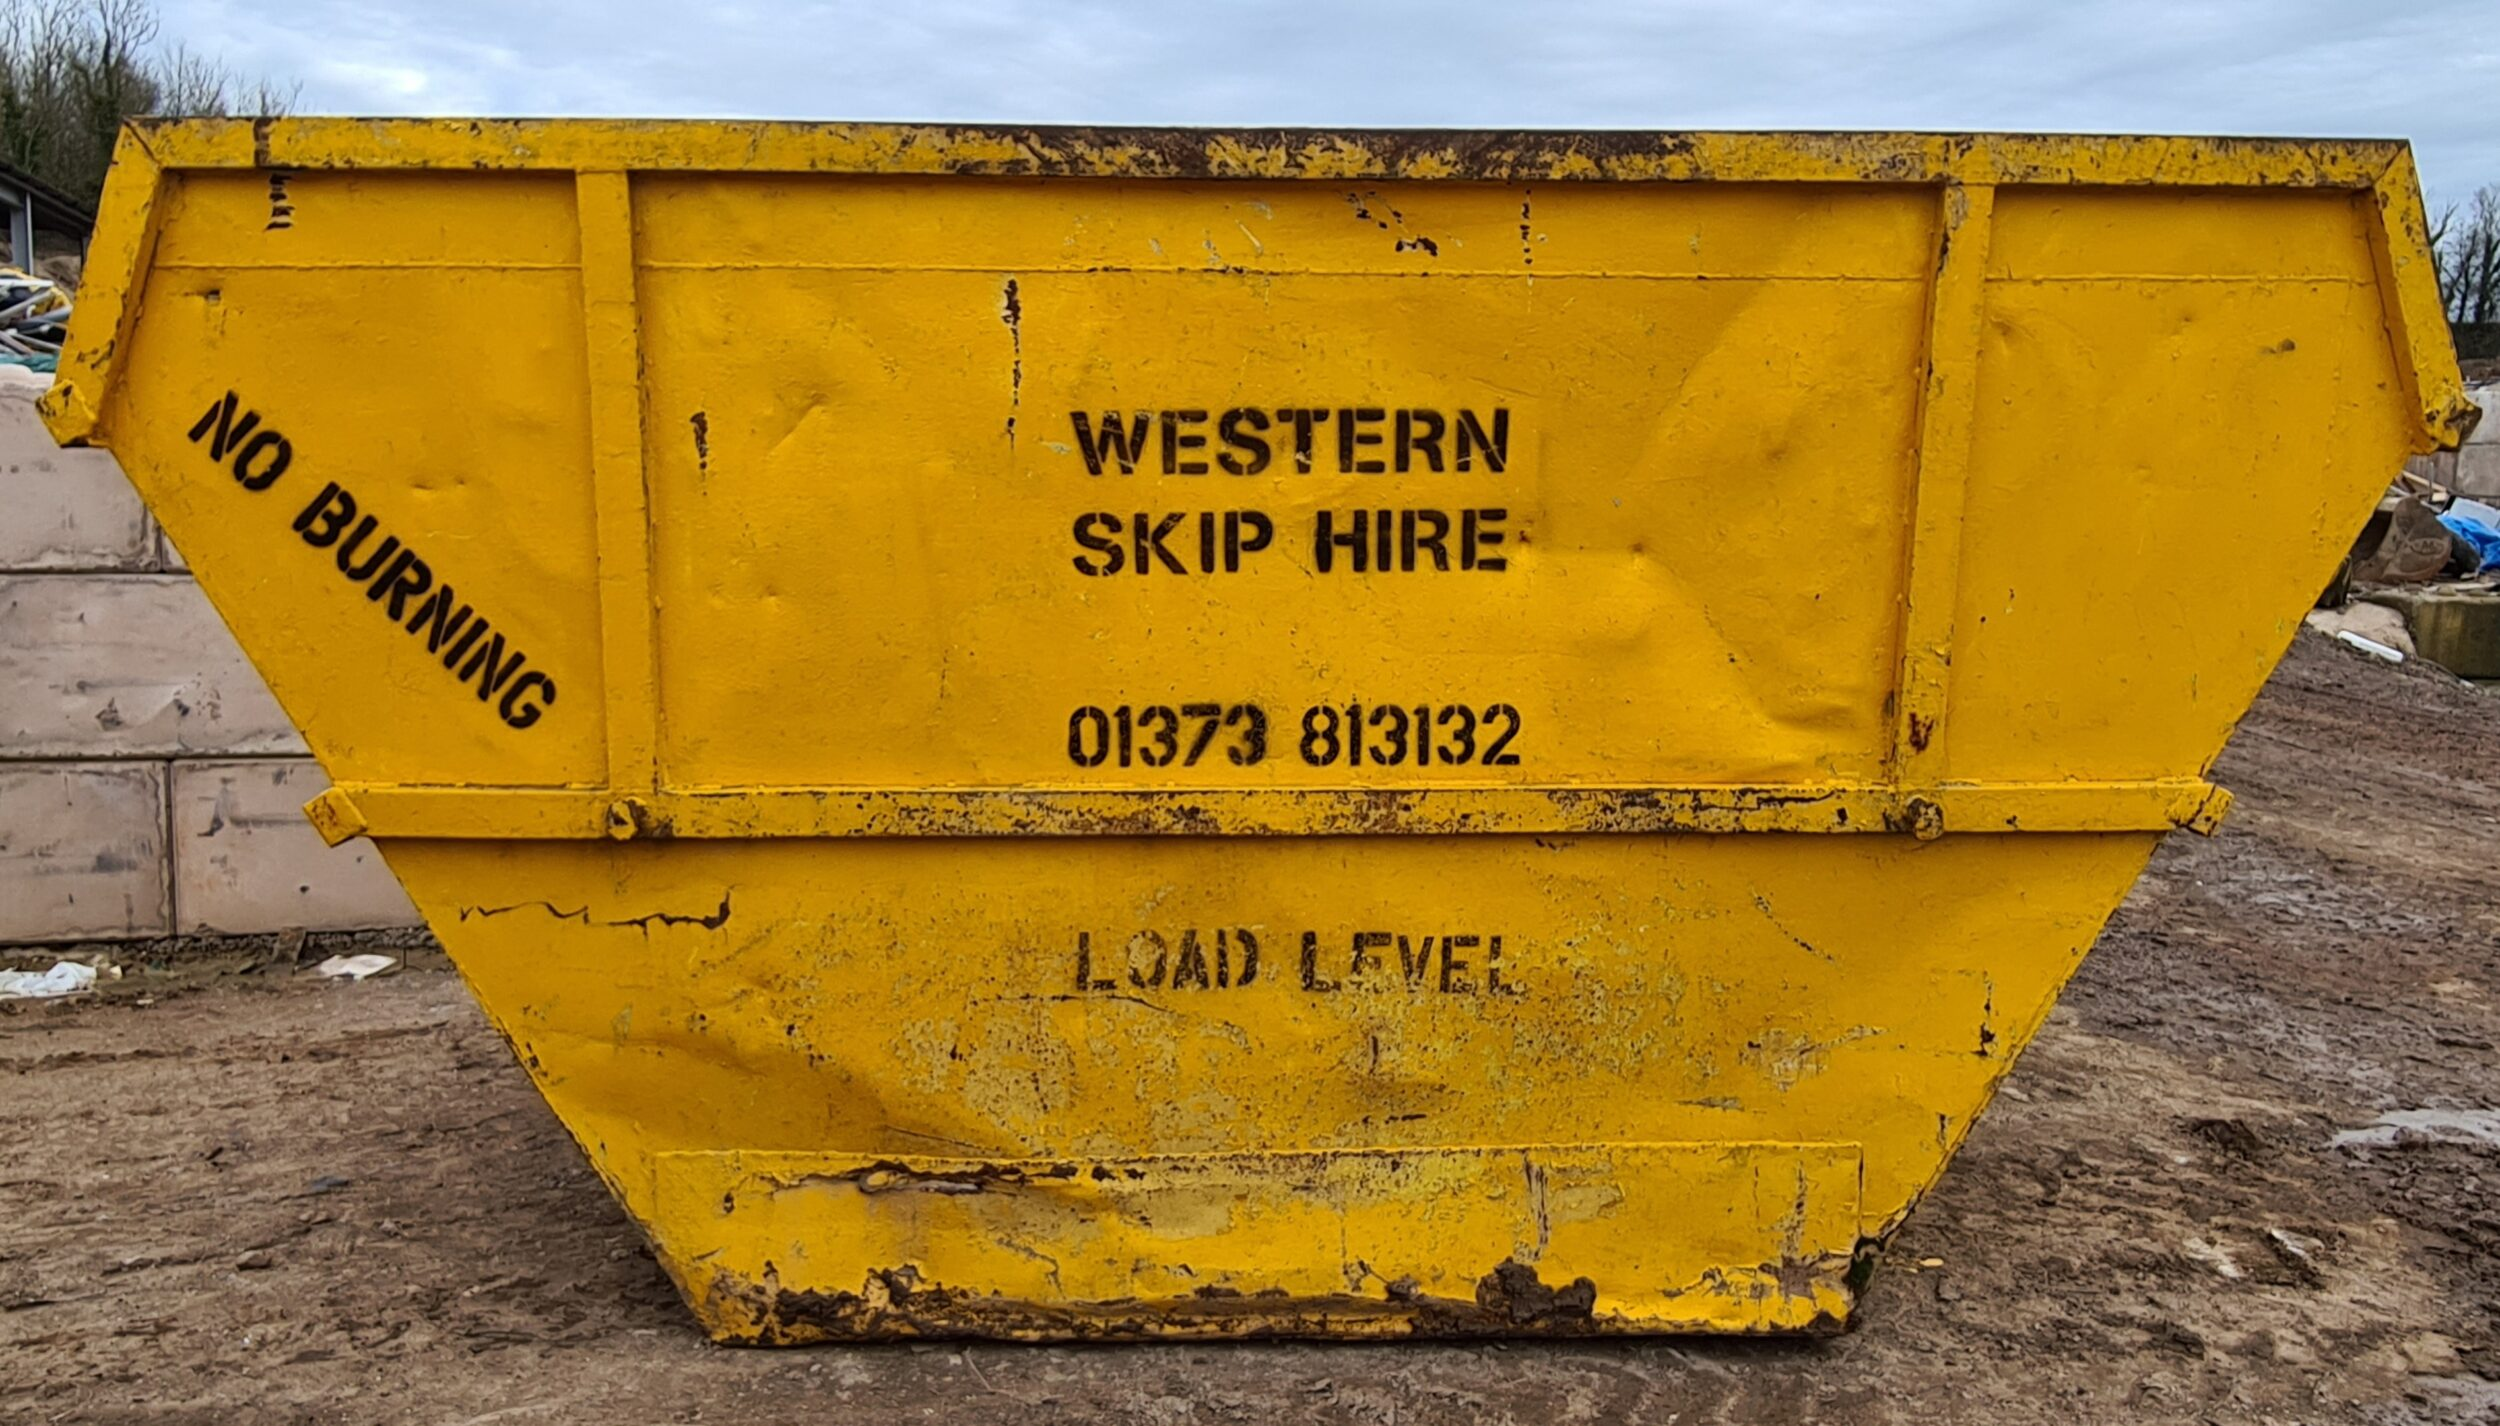 Yellow 14 yard skip. Western Skip Hire, Skip Hire, Sweeper Hire, Aggregates, Recycled Waste Stone and Concrete. Westbury, Frome, Somerset, Wiltshire.